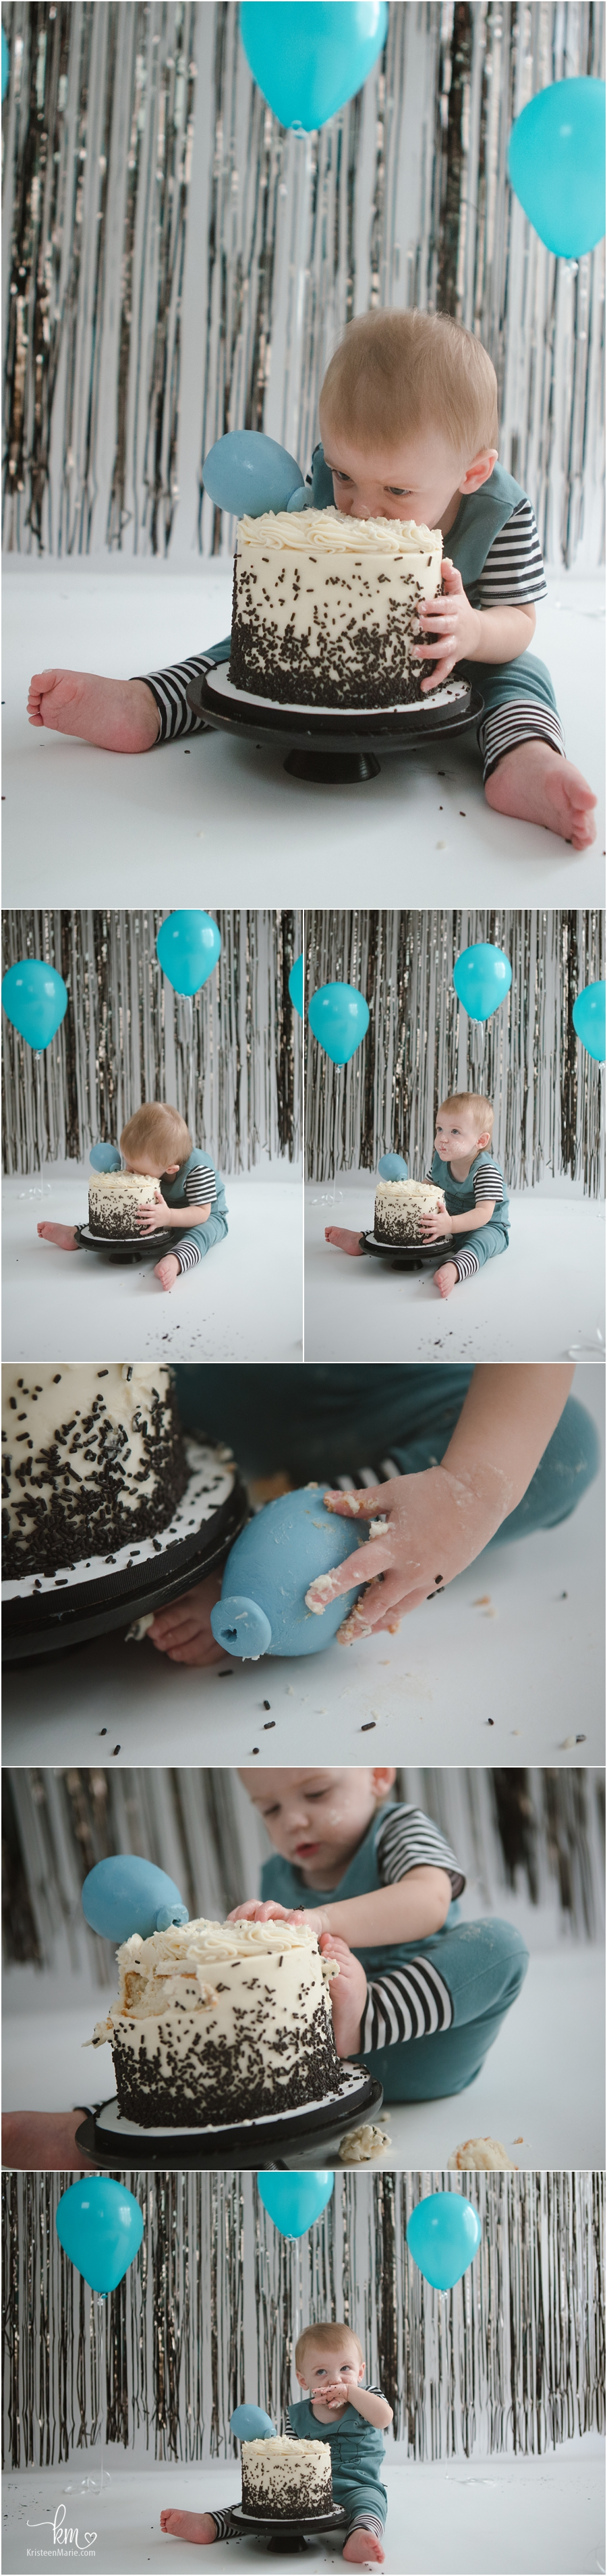 birthday boy with teal themed session